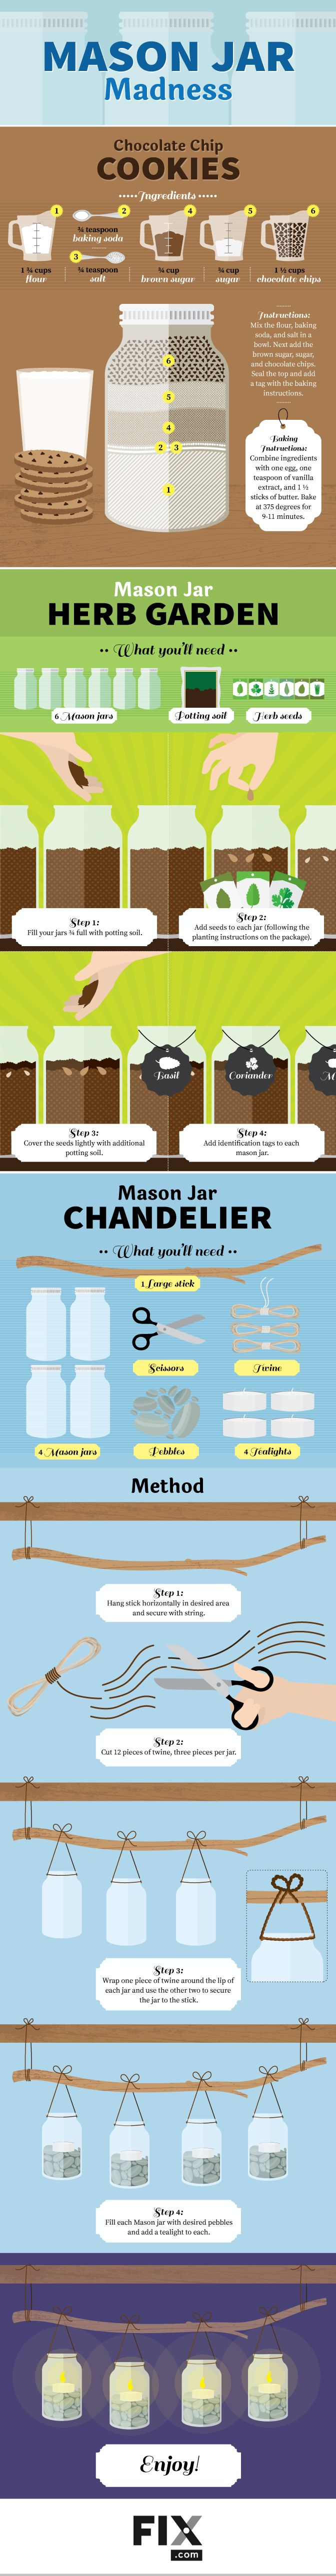 Mason Jar Madness #Infographic